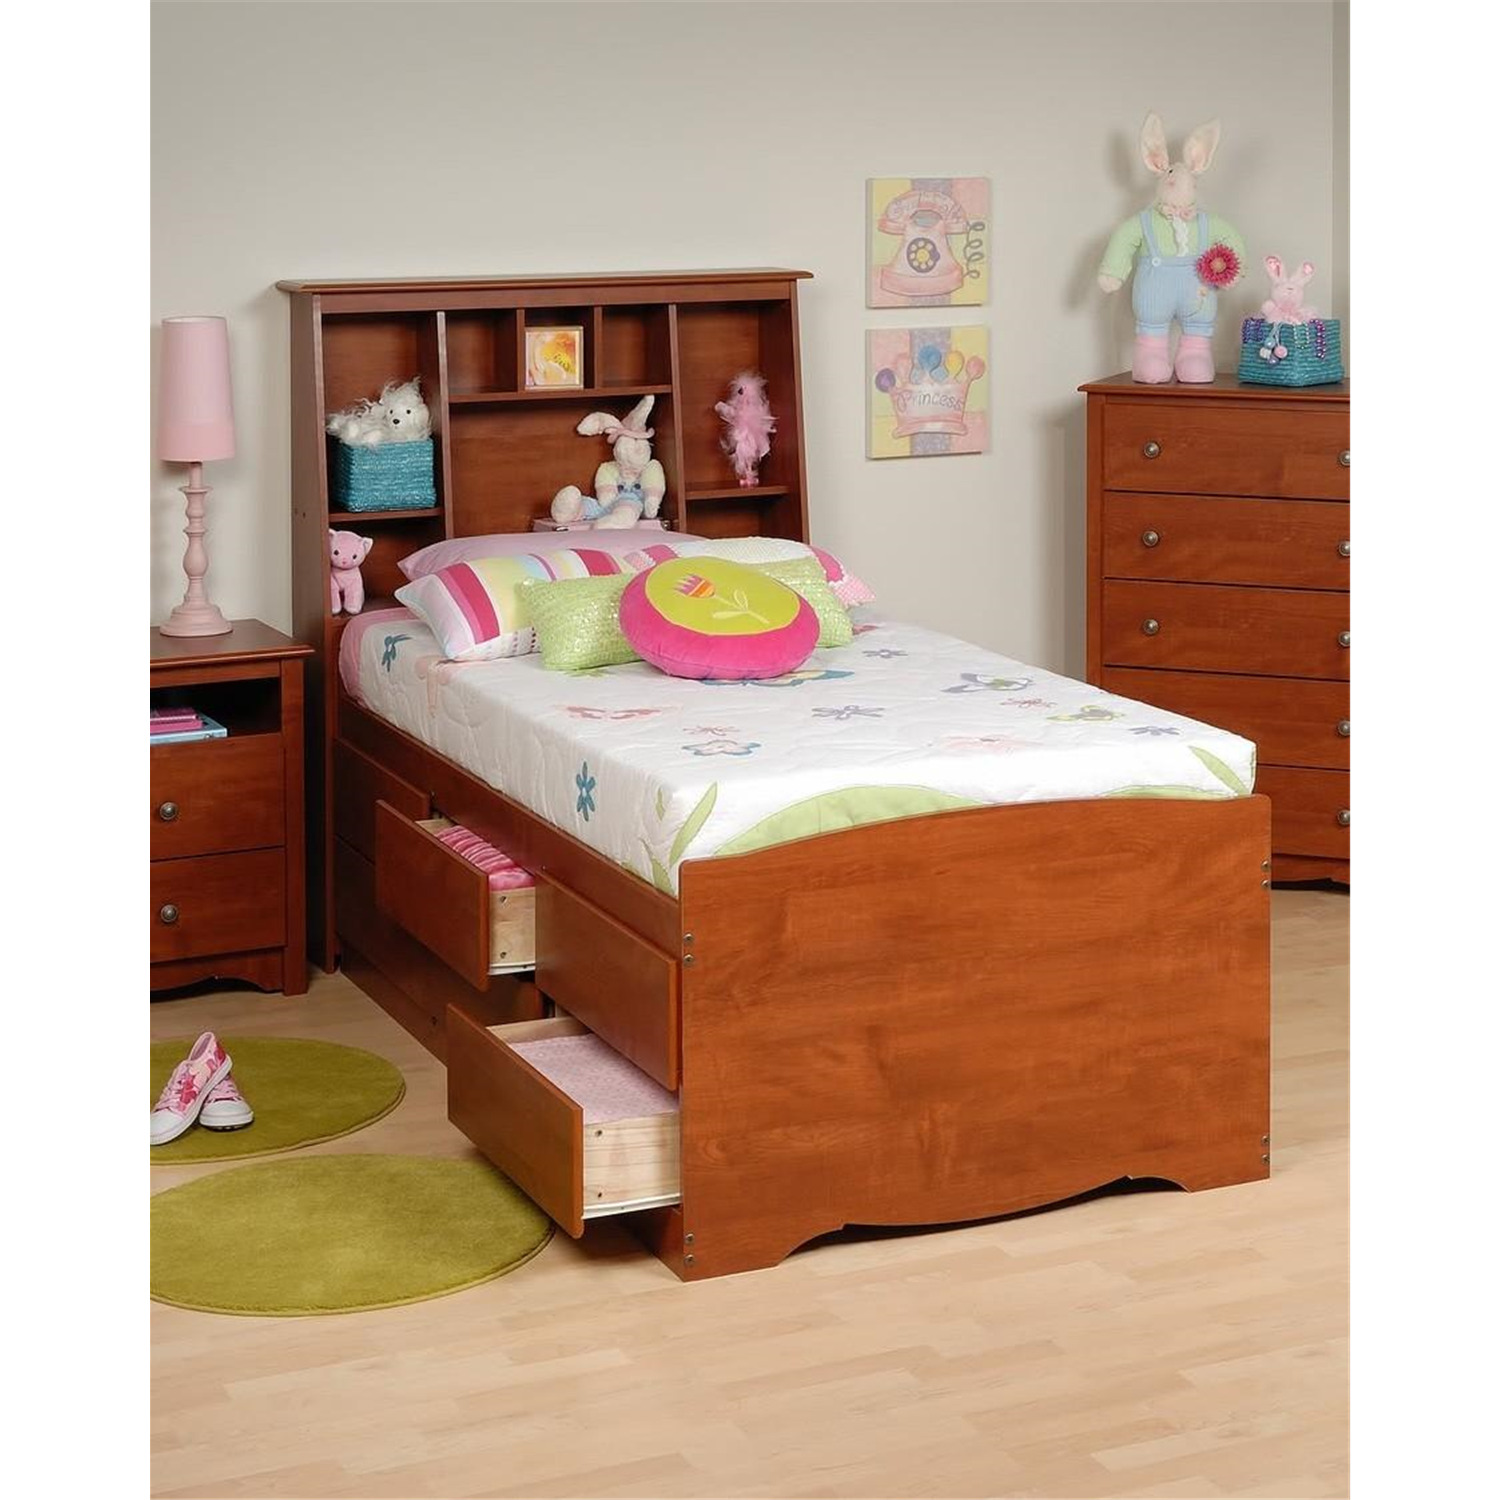 Prepac Tall Captain's Platform Storage Bed W/ Bookcase